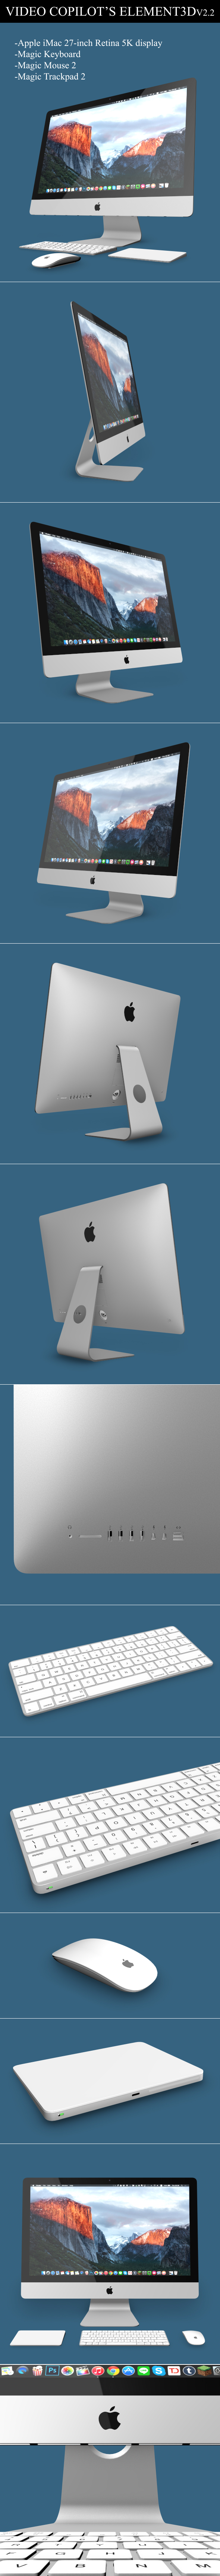 Element3D - iMac 2015 (Retina 5K 27-inch) - 3DOcean Item for Sale